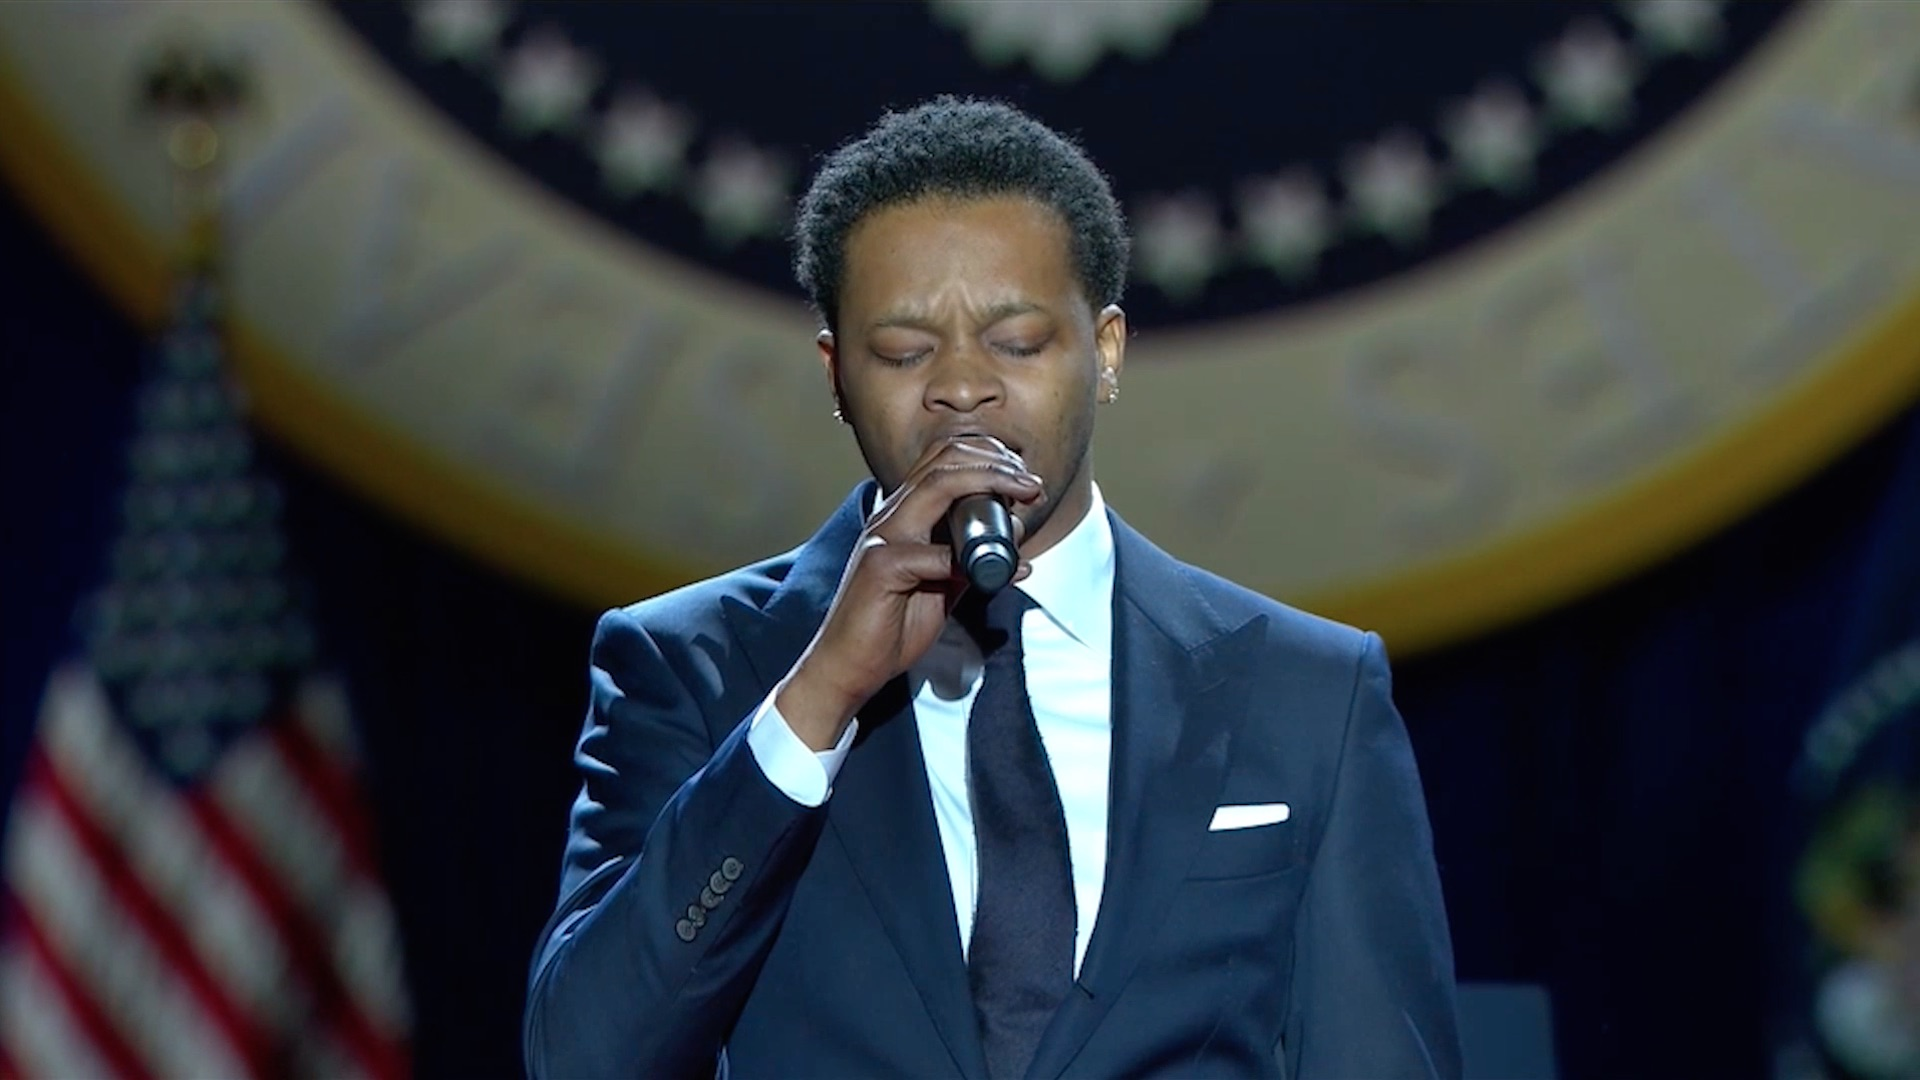 Bj The Chicago Kid Sings The National Anthem At Obama S Farewell Speech The Washington Post